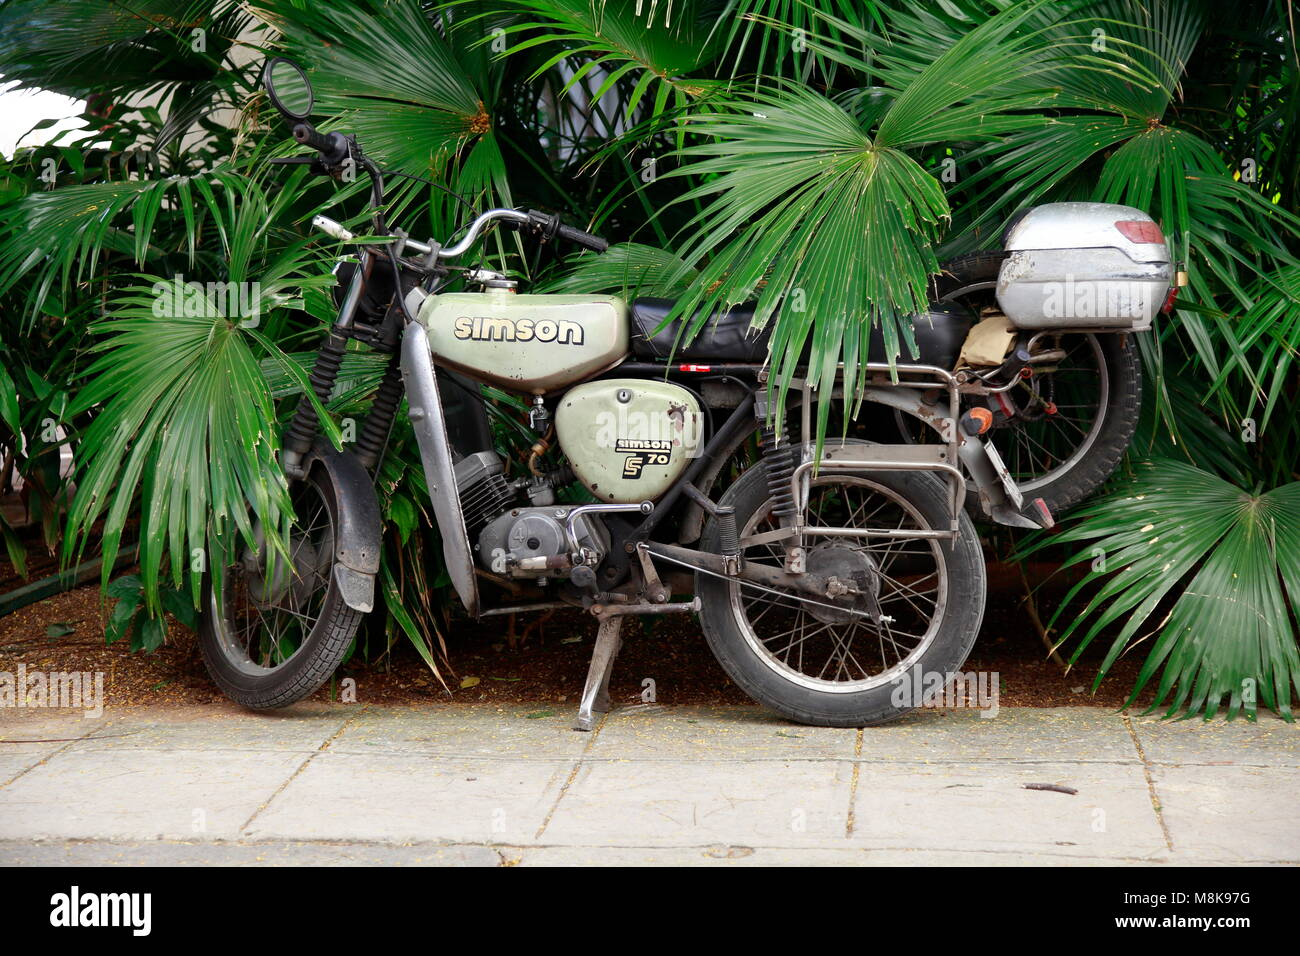 Old Motorbike, Habana Vieja, Cuba Stock Photo